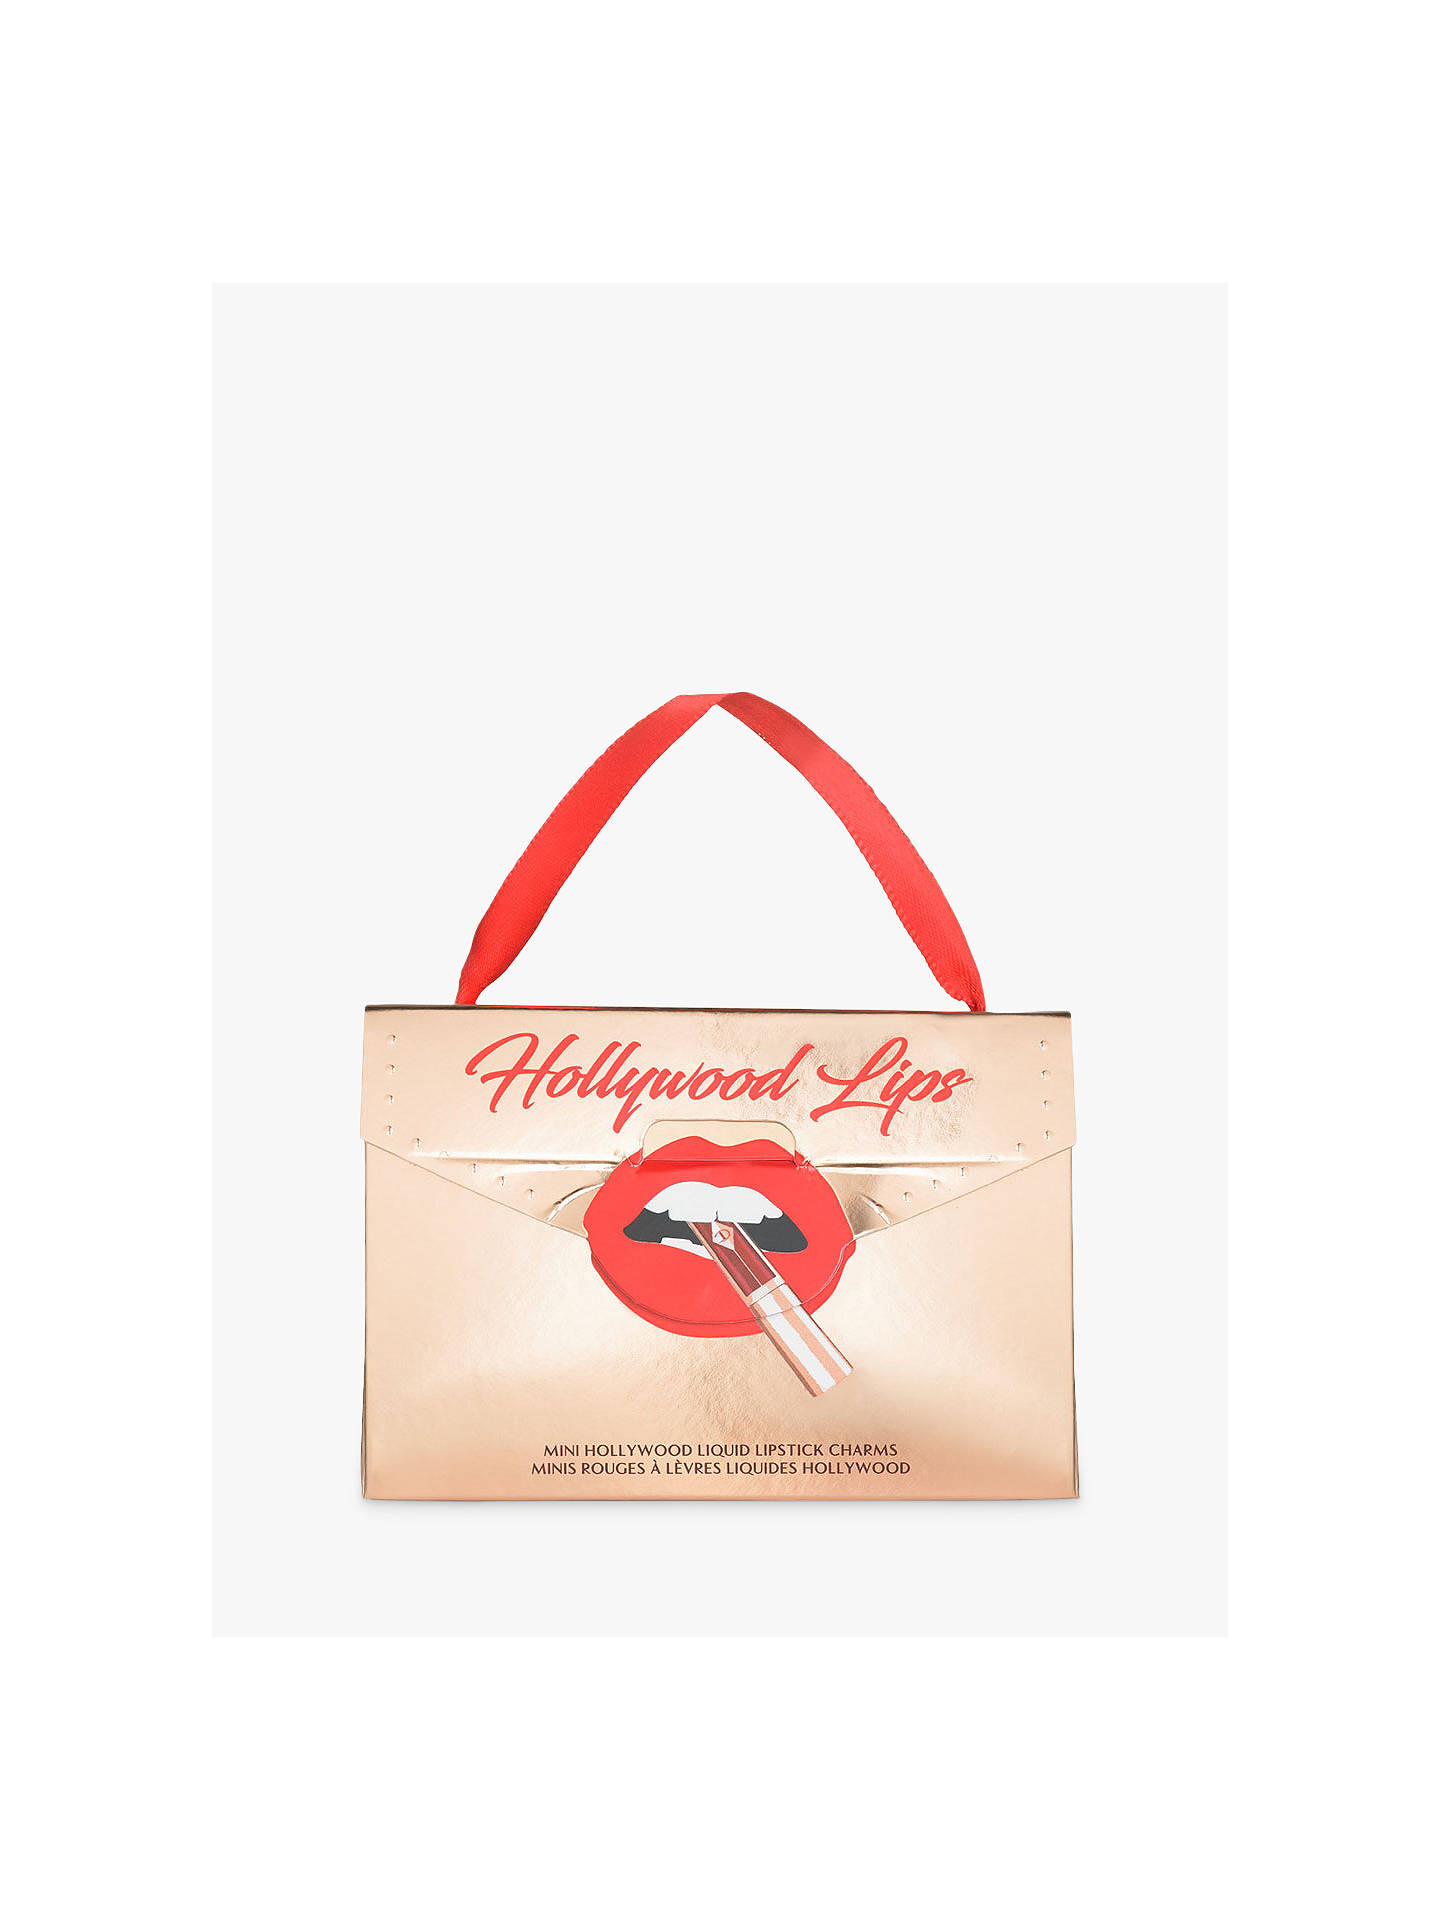 Buy Charlotte Tilbury Mini Hollywood Lips Duo Limited Edition Gift Set Online at johnlewis.com